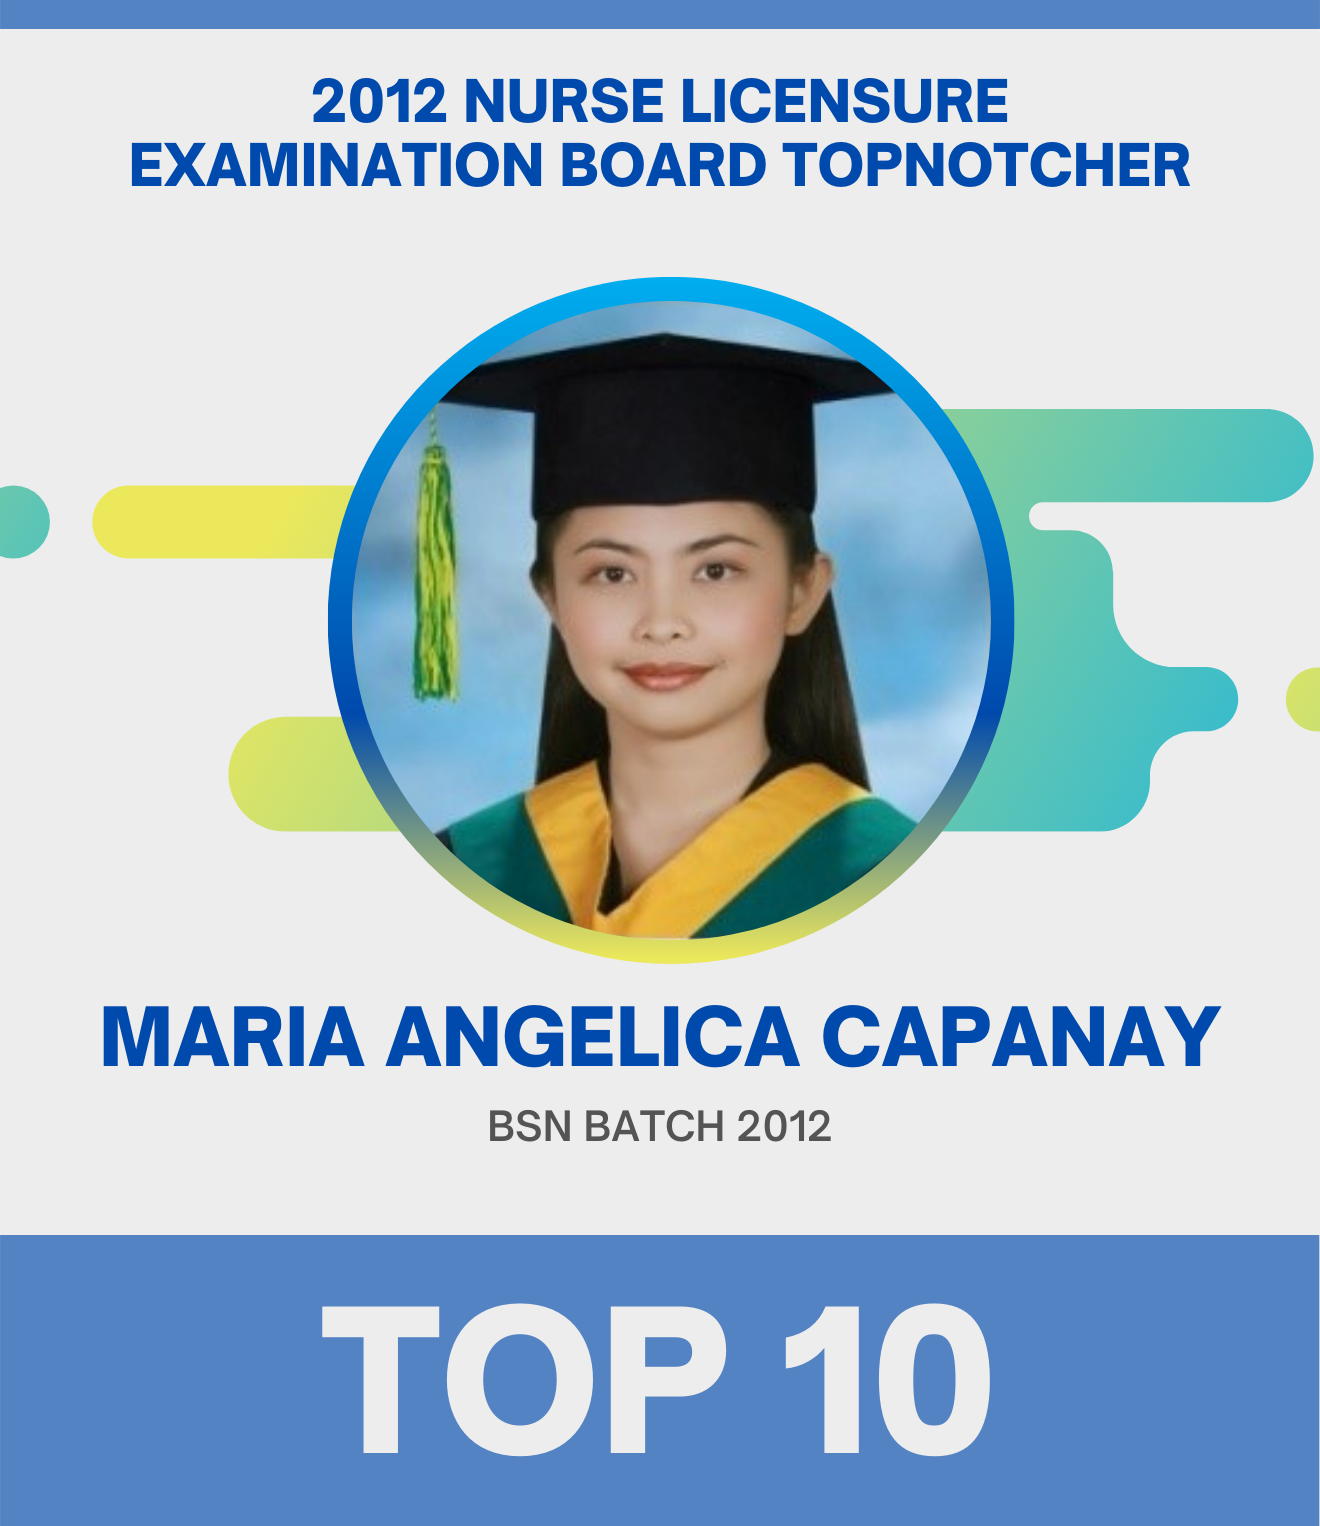 Top 10 - maria angelica capanay